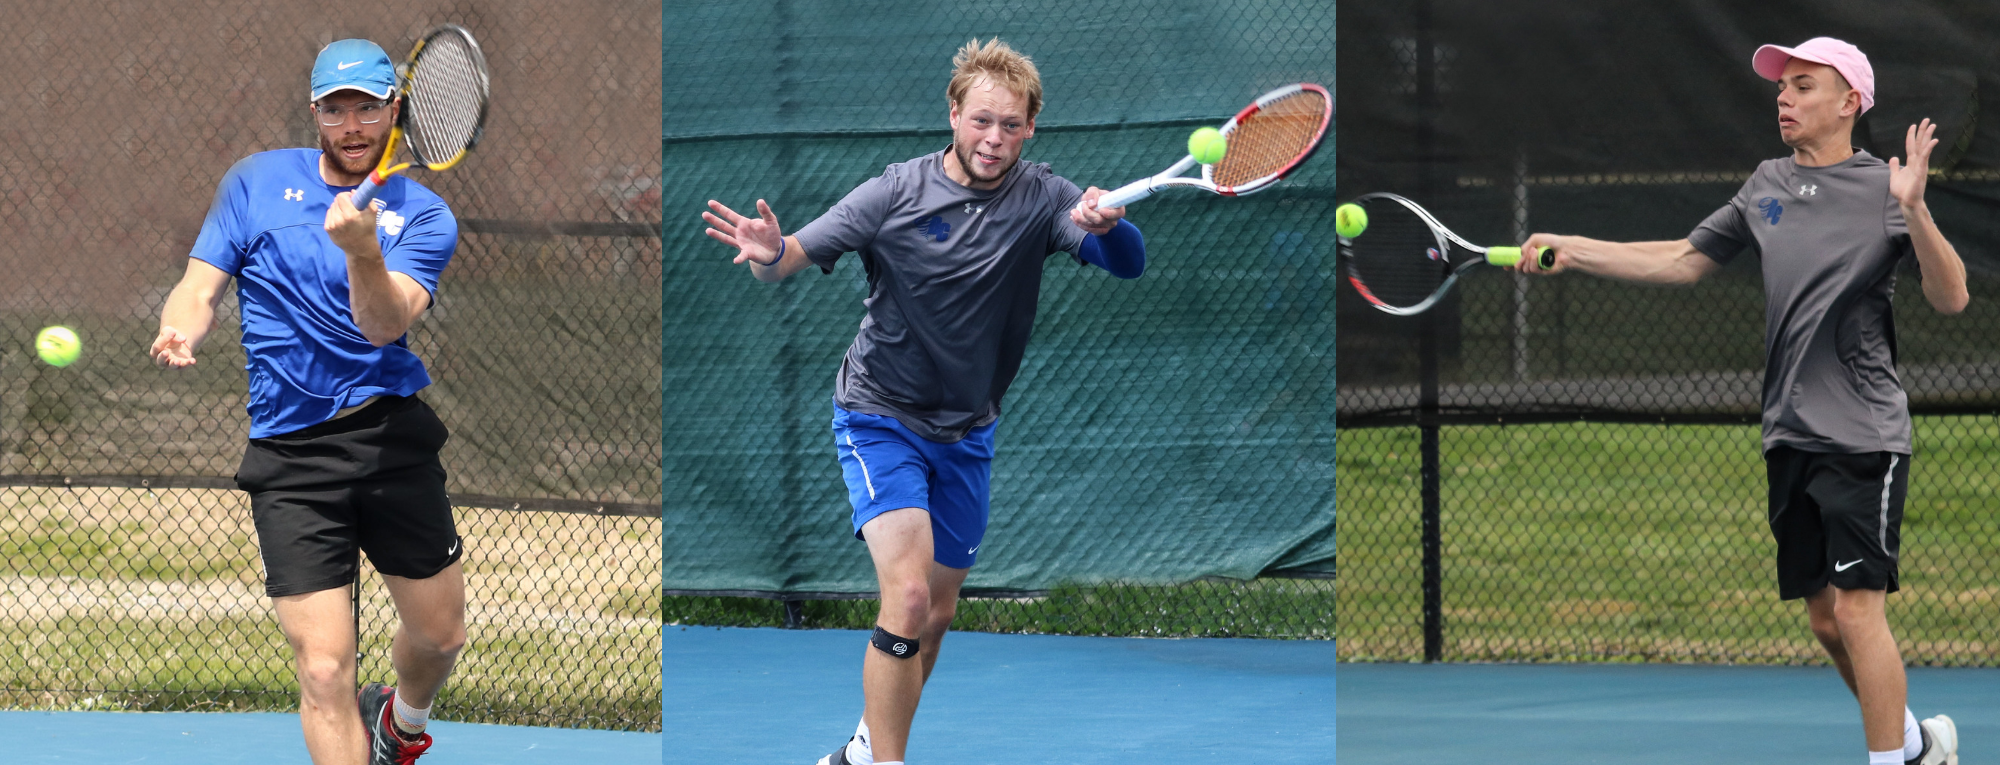 Mittring, Hengst, Frazee Cap off Perfect USA South Seasons in Singles Play